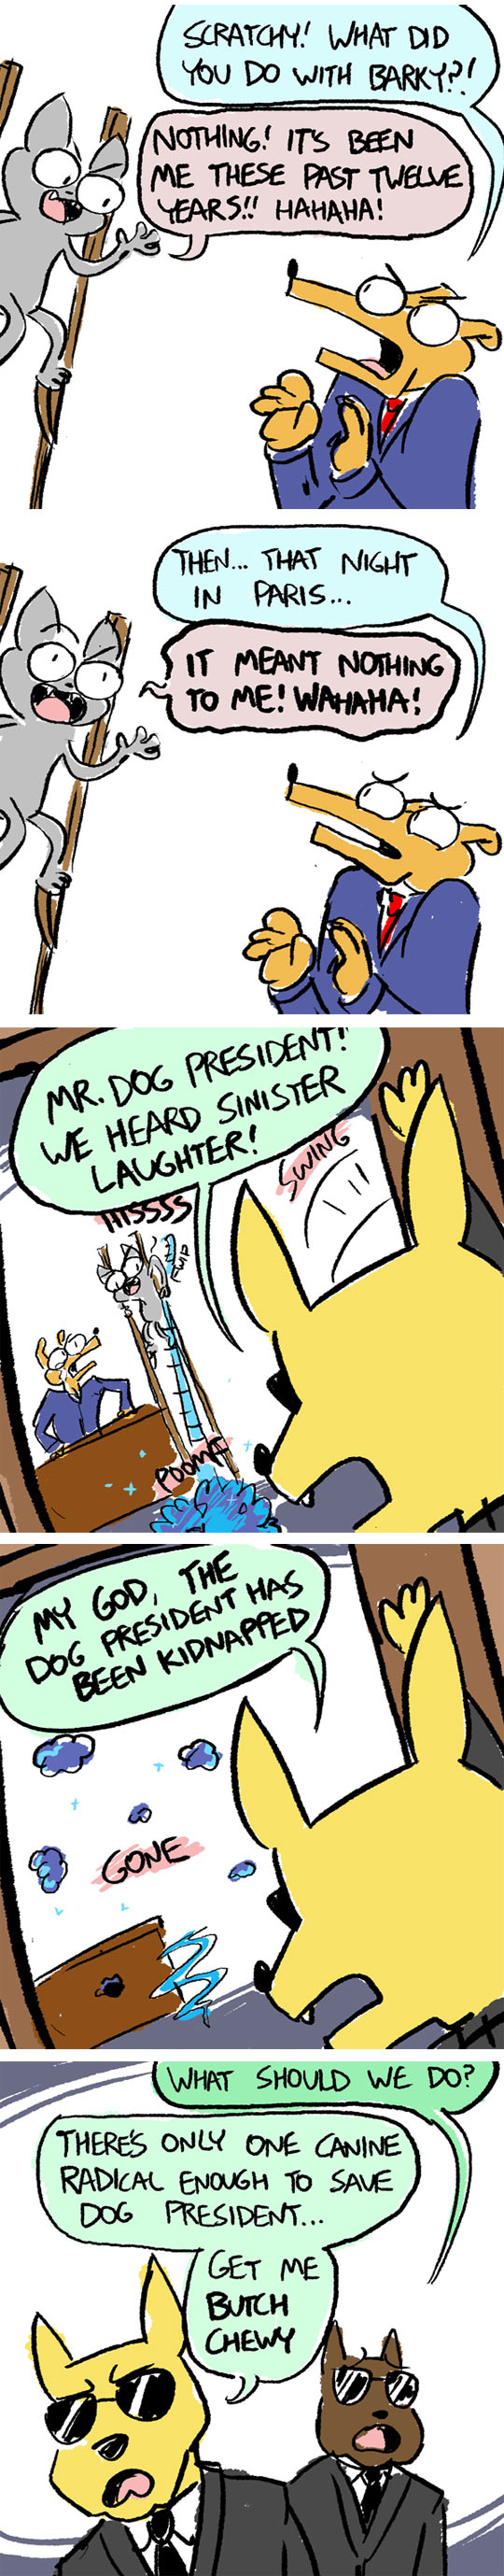 funny-dog-president-kidnapped-evil-cat-comic